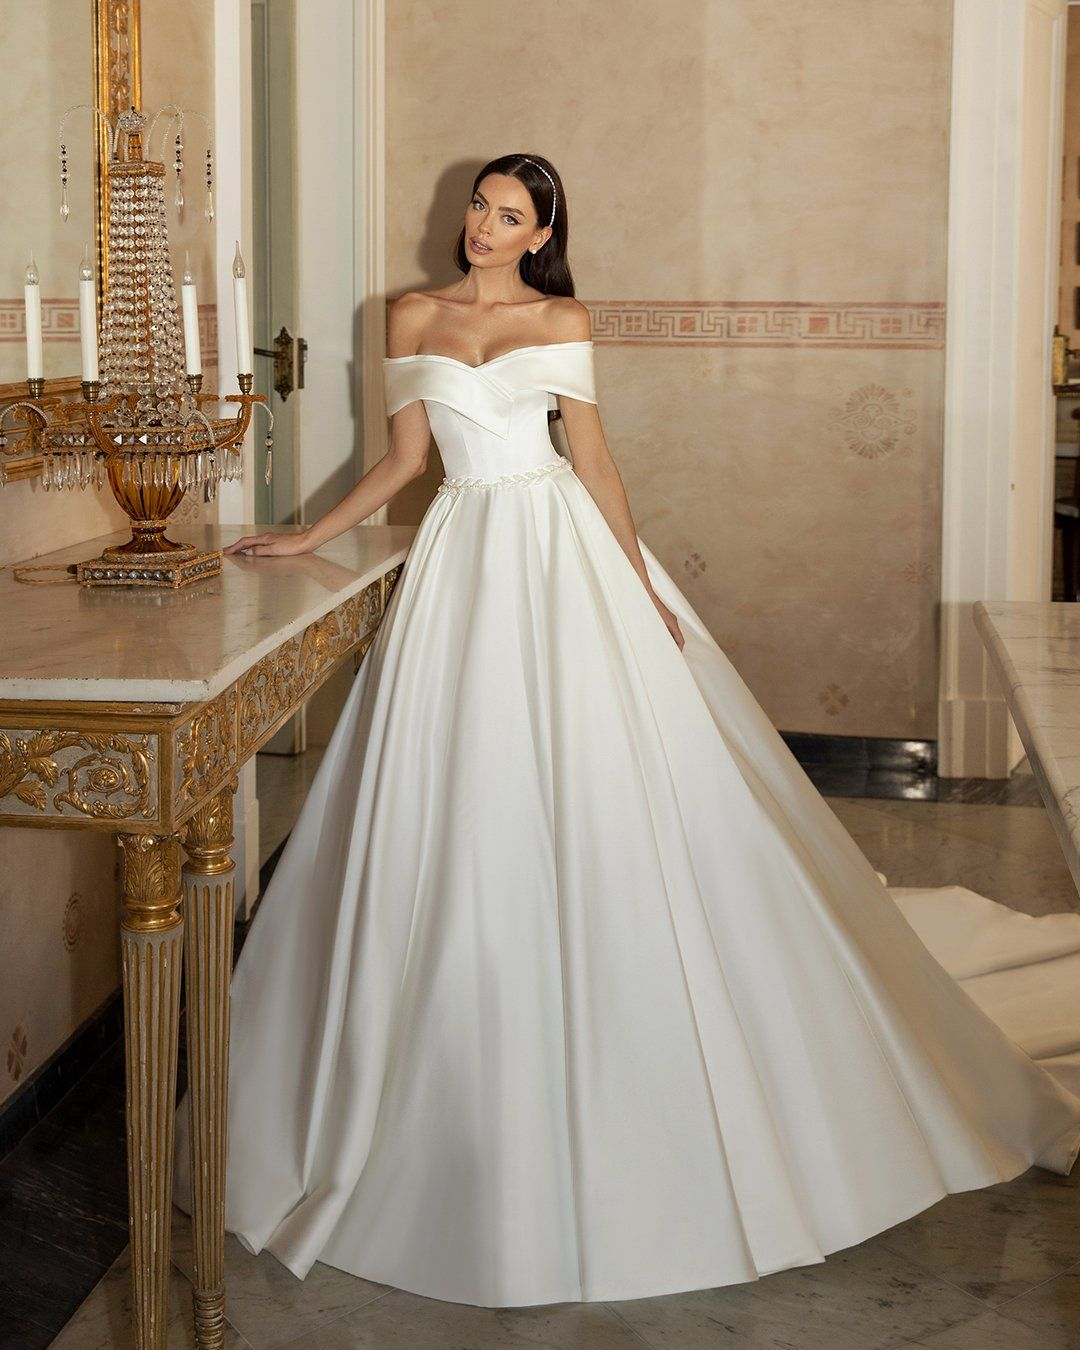 36 Off The Shoulder Wedding Dresses To See In 2021 Ball Gown Wedding Dress Ball Gowns Wedding Wedding Dress Brands [ 1350 x 1080 Pixel ]